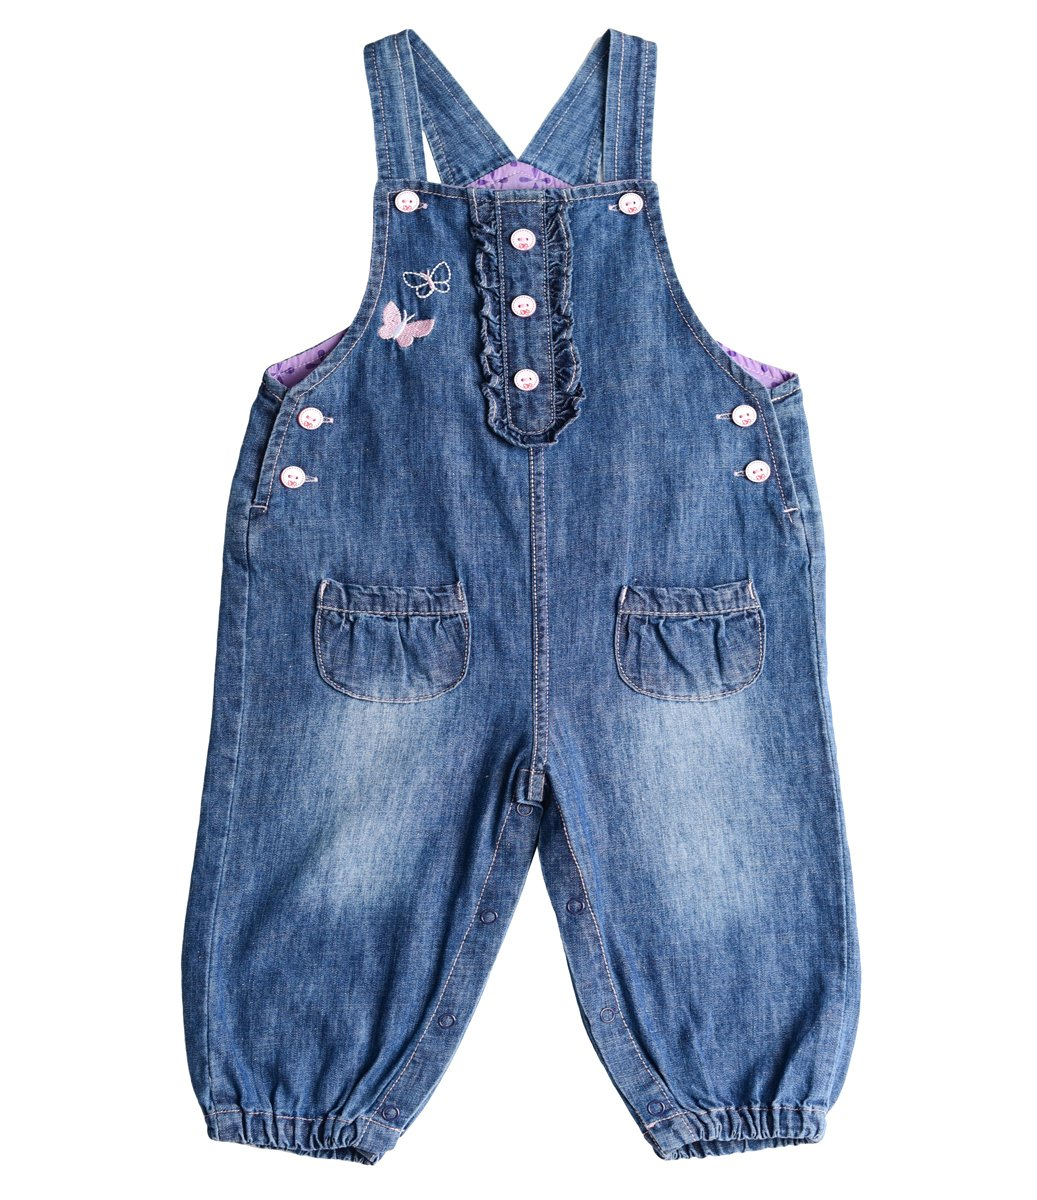 BUYIIT Baby&Little Girls Overalls Embroidered Butterfly Washed Dungarees Jumpsuits 3-24M